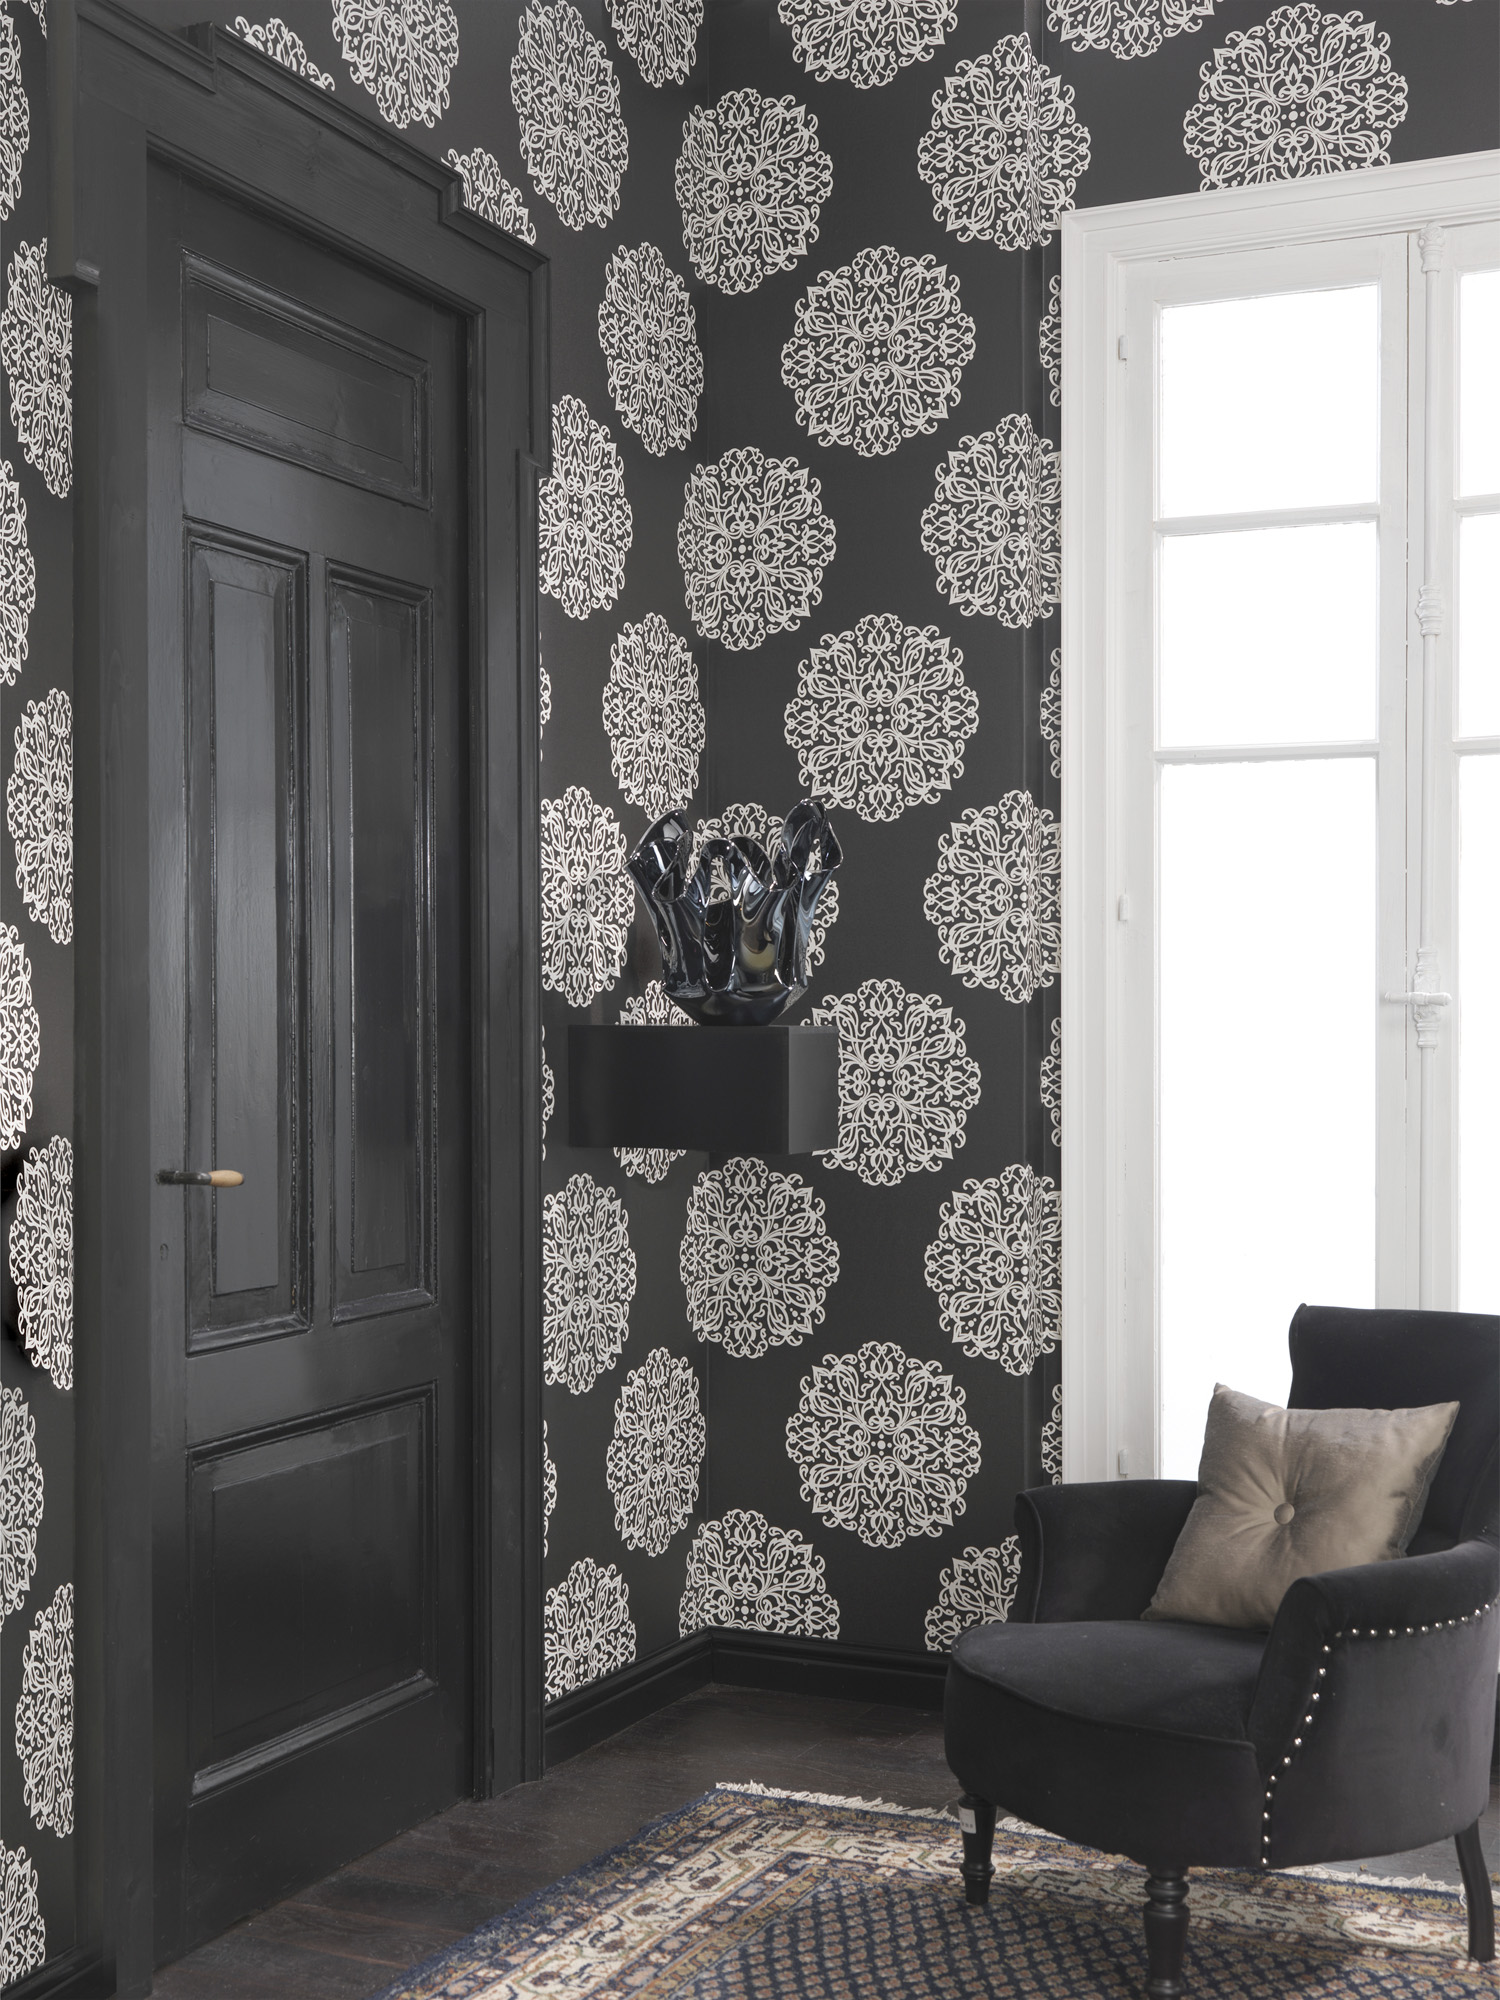 Embellished-is-comprised-of-intricate-weaved-lines-in-a-wallpaper-wp440857